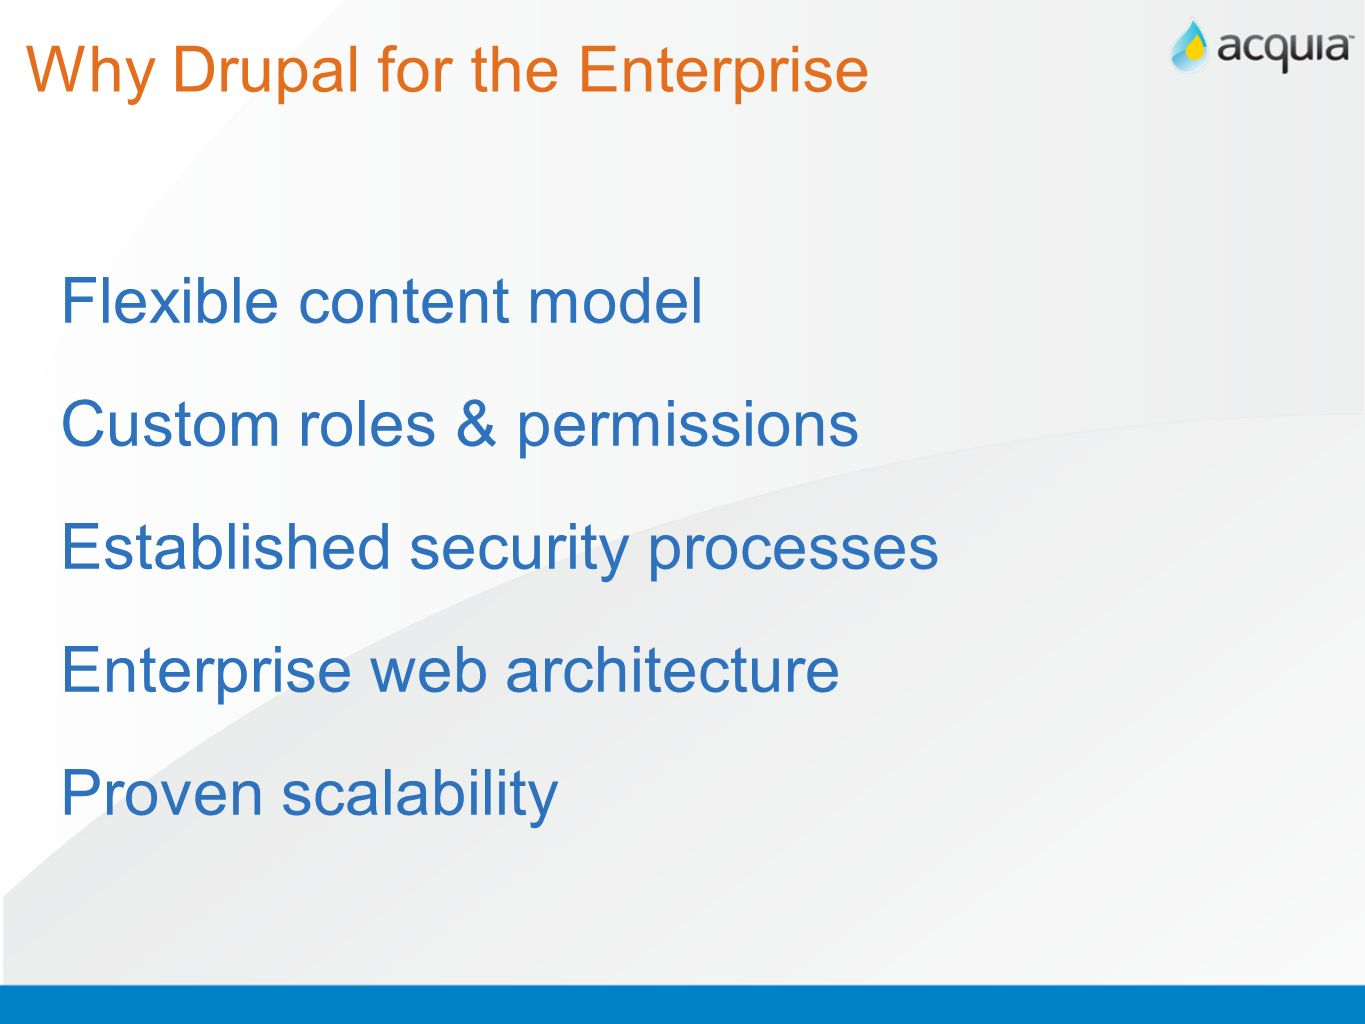 Learn More: Drupal TCO Whitepaper http://acquia.com/resour ces/whitepapers